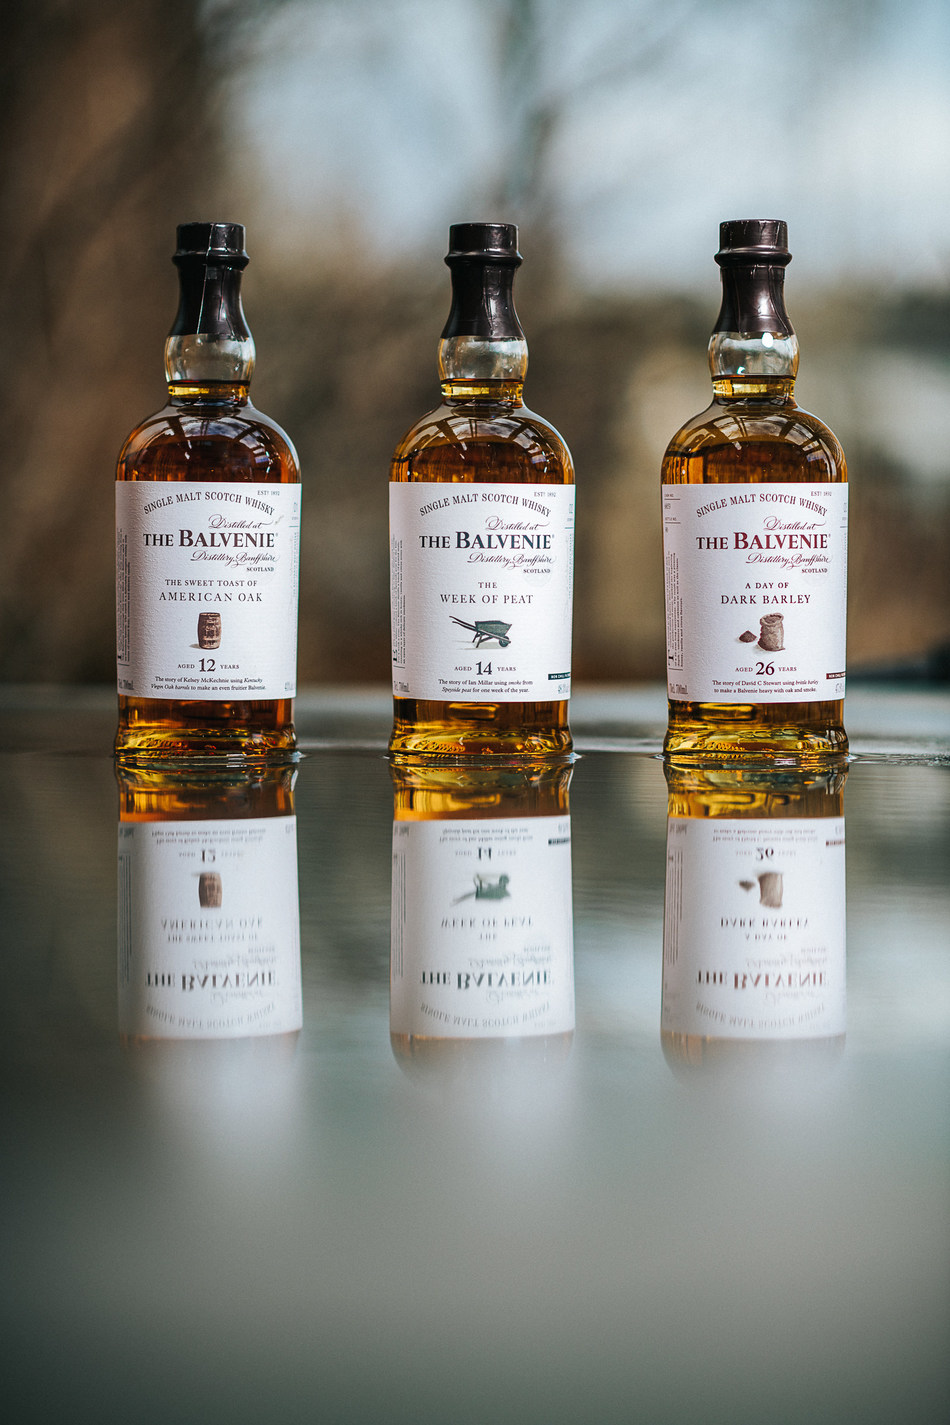 Credit: The Balvenie/From Barrel to Bottle (CNW Group/The Balvenie)